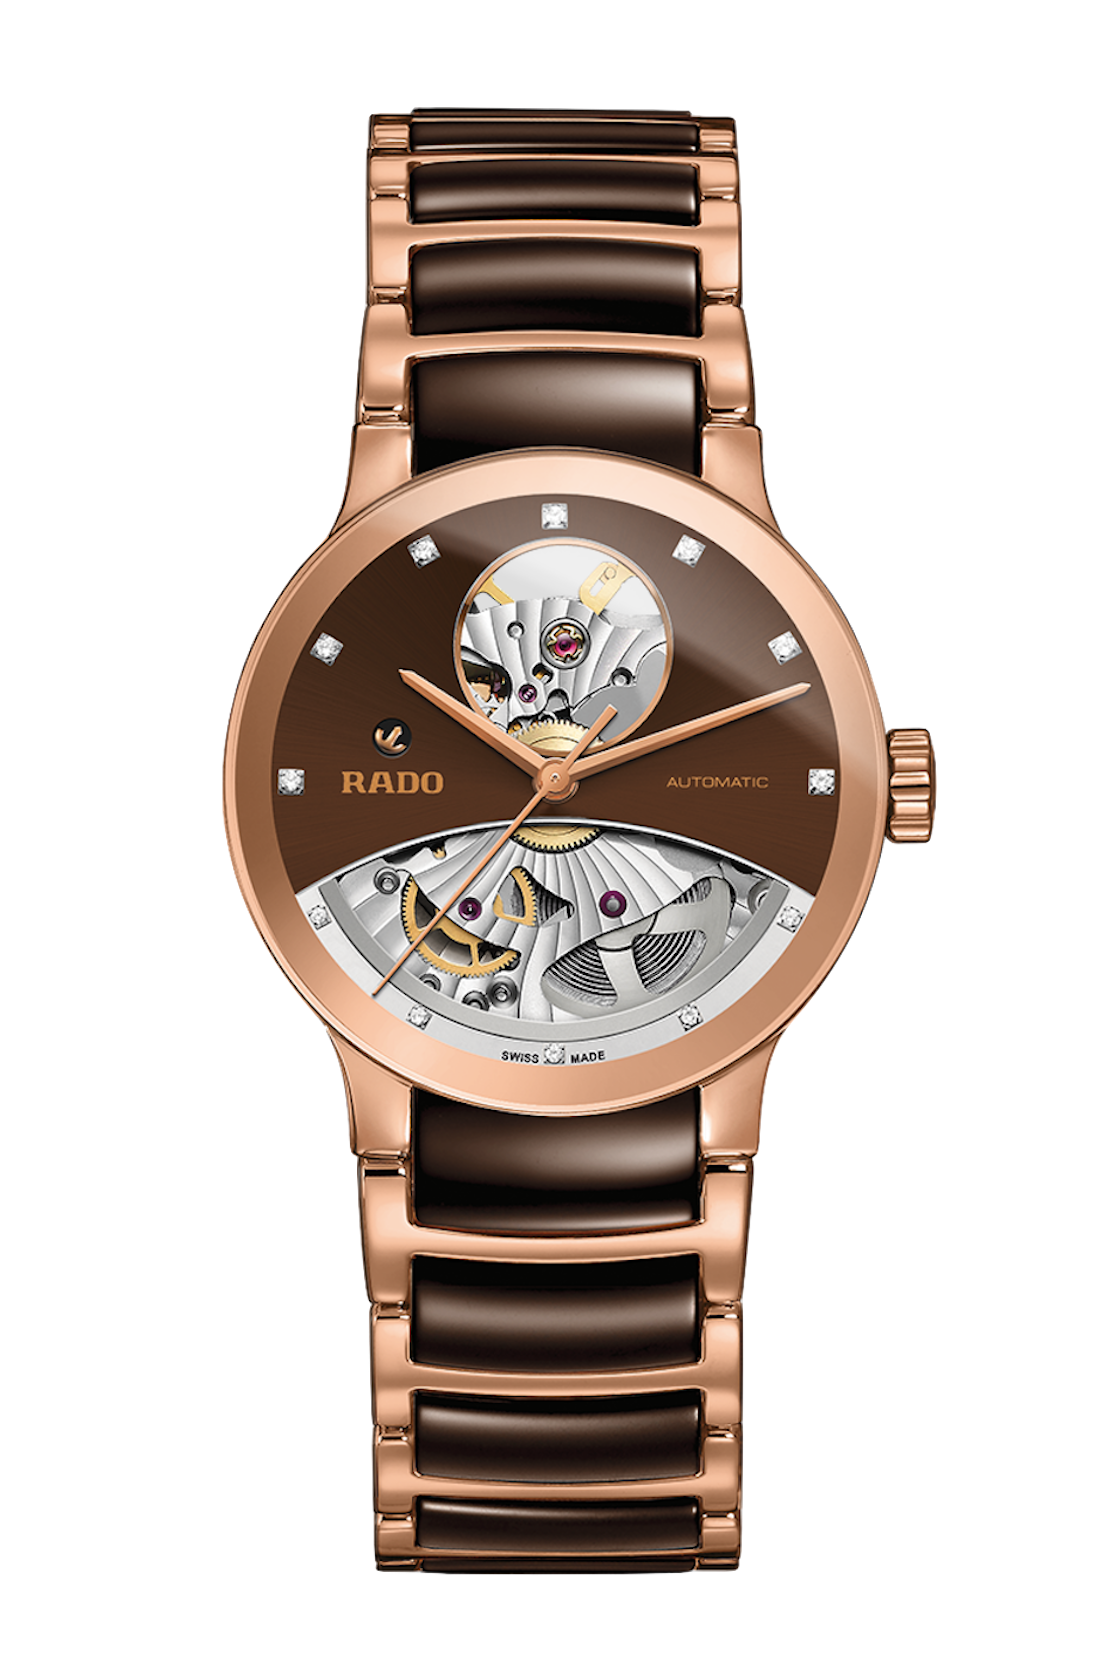 Rado Uhr in Metalloptik